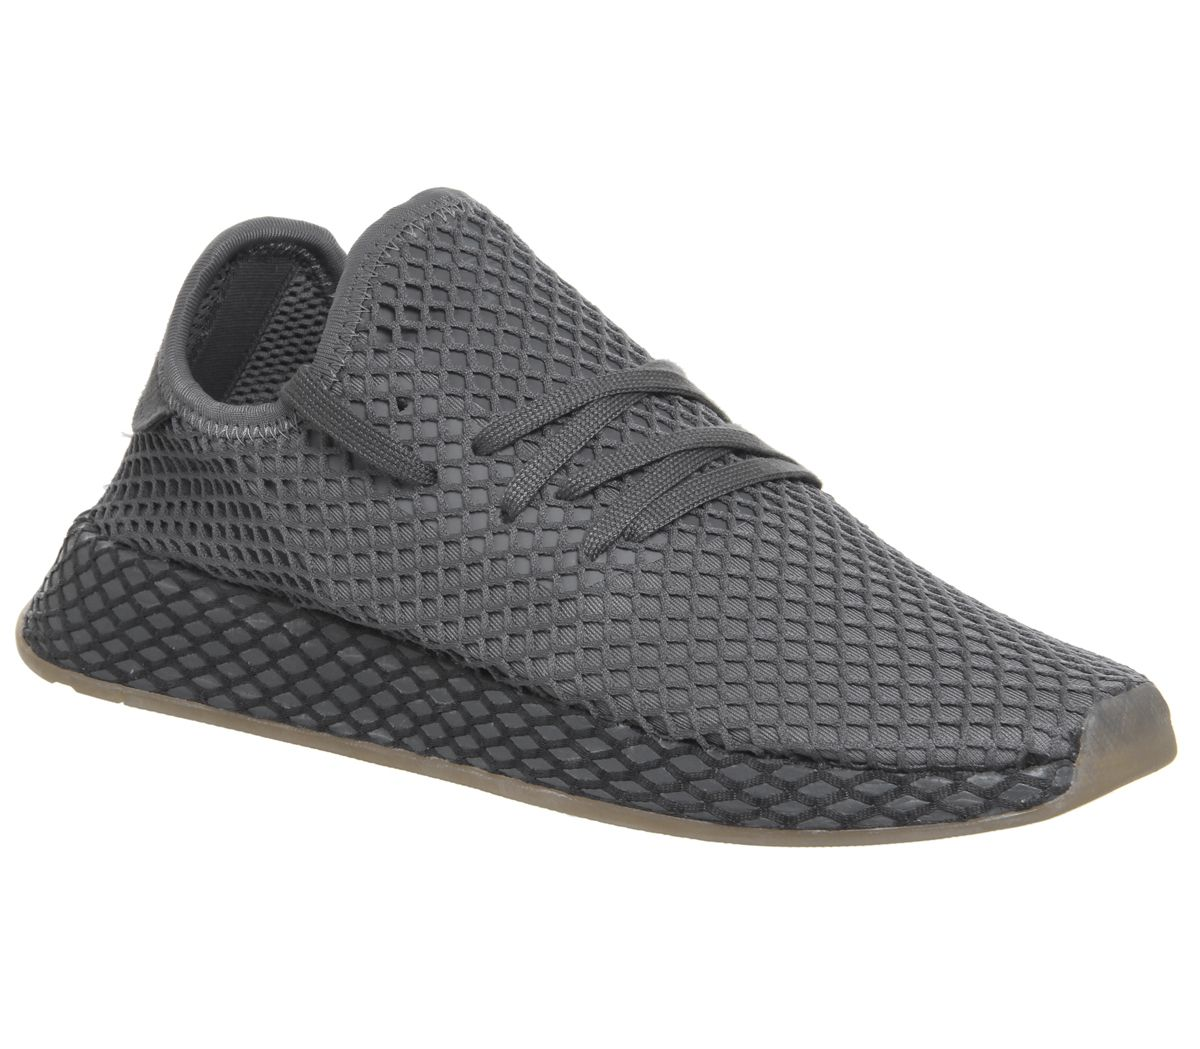 535d438bc adidas Deerupt Trainers Grey Grey White - Unisex Sports